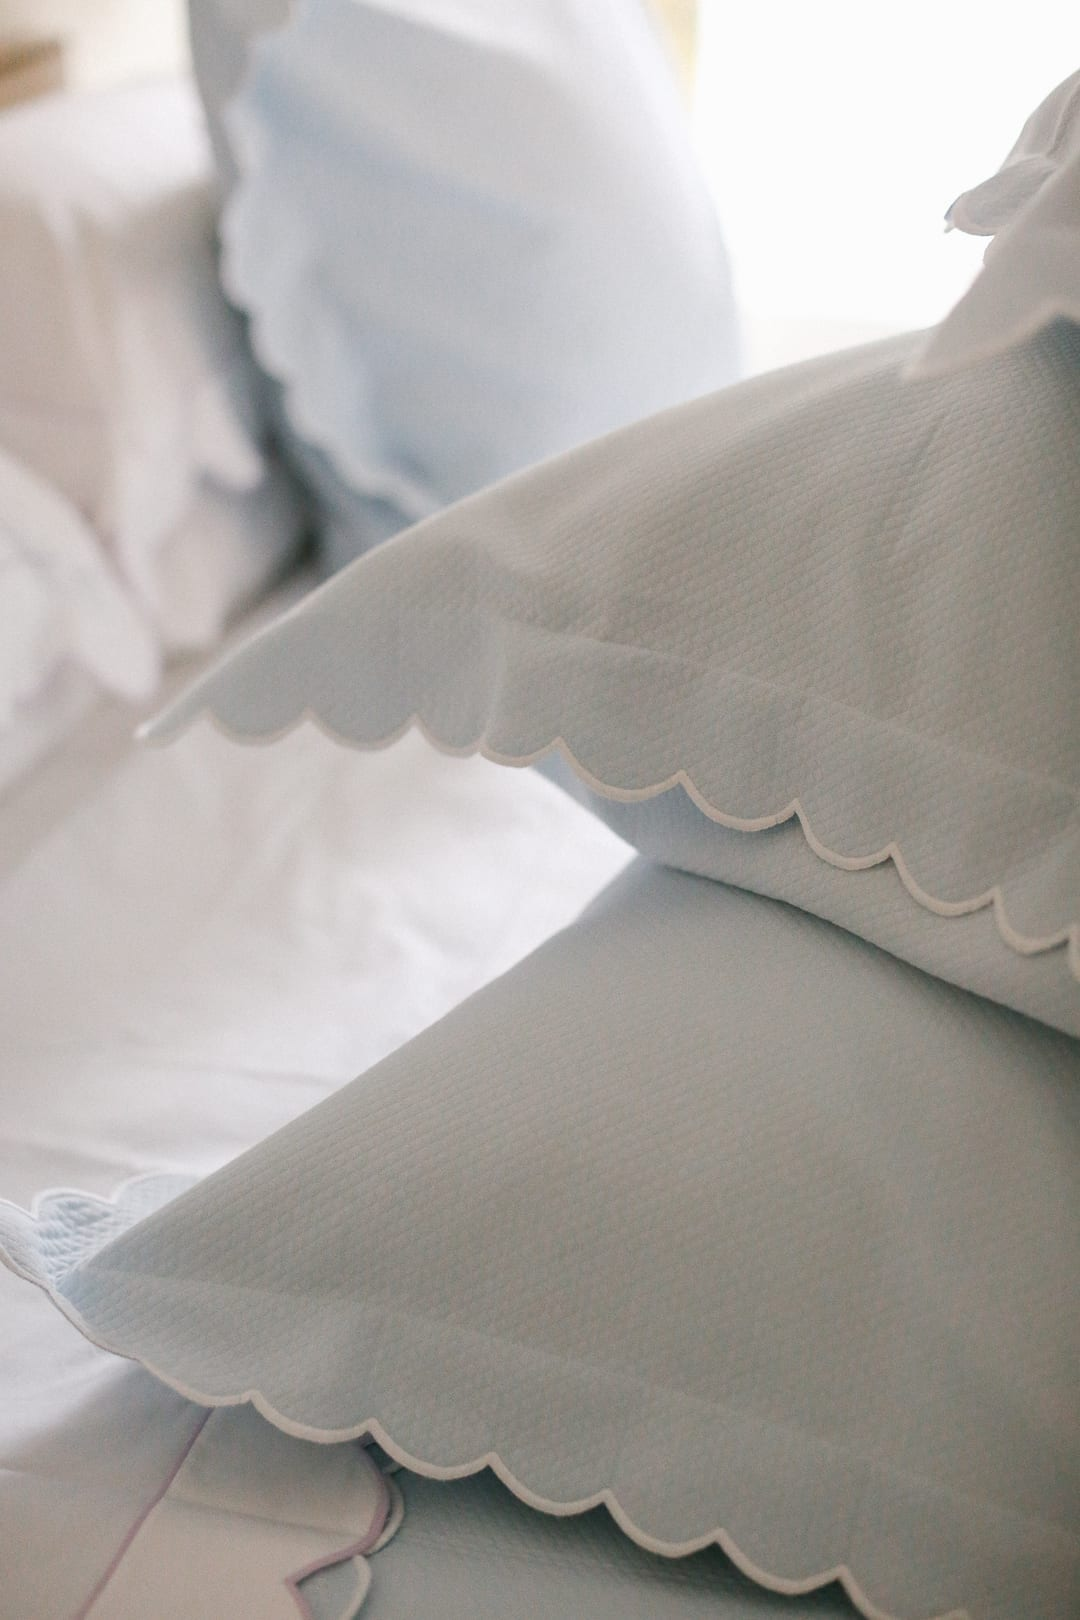 Dreamy Bedding with Matouk - Scalloped edged pillows